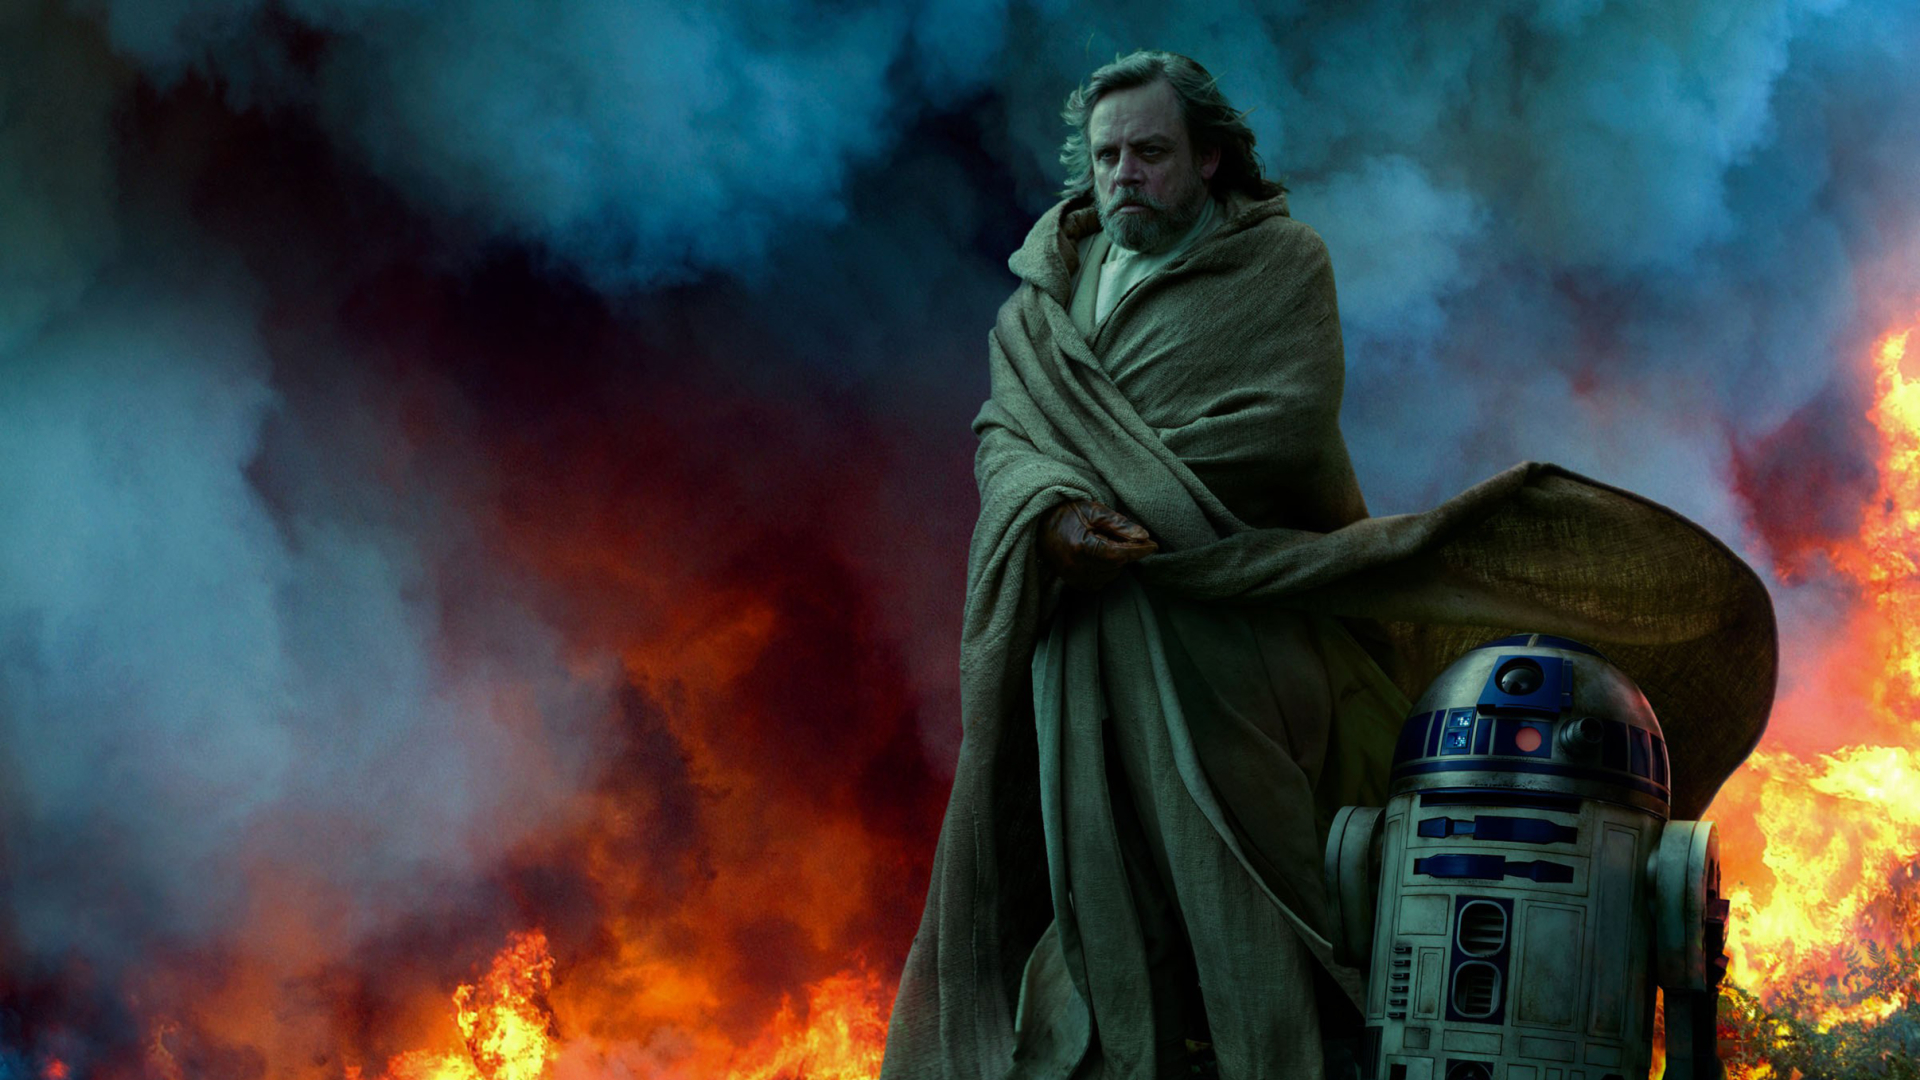 1920x1080 Star Wars Skywalker 1080p Laptop Full Hd Wallpaper Hd Movies 4k Wallpapers Images Photos And Background